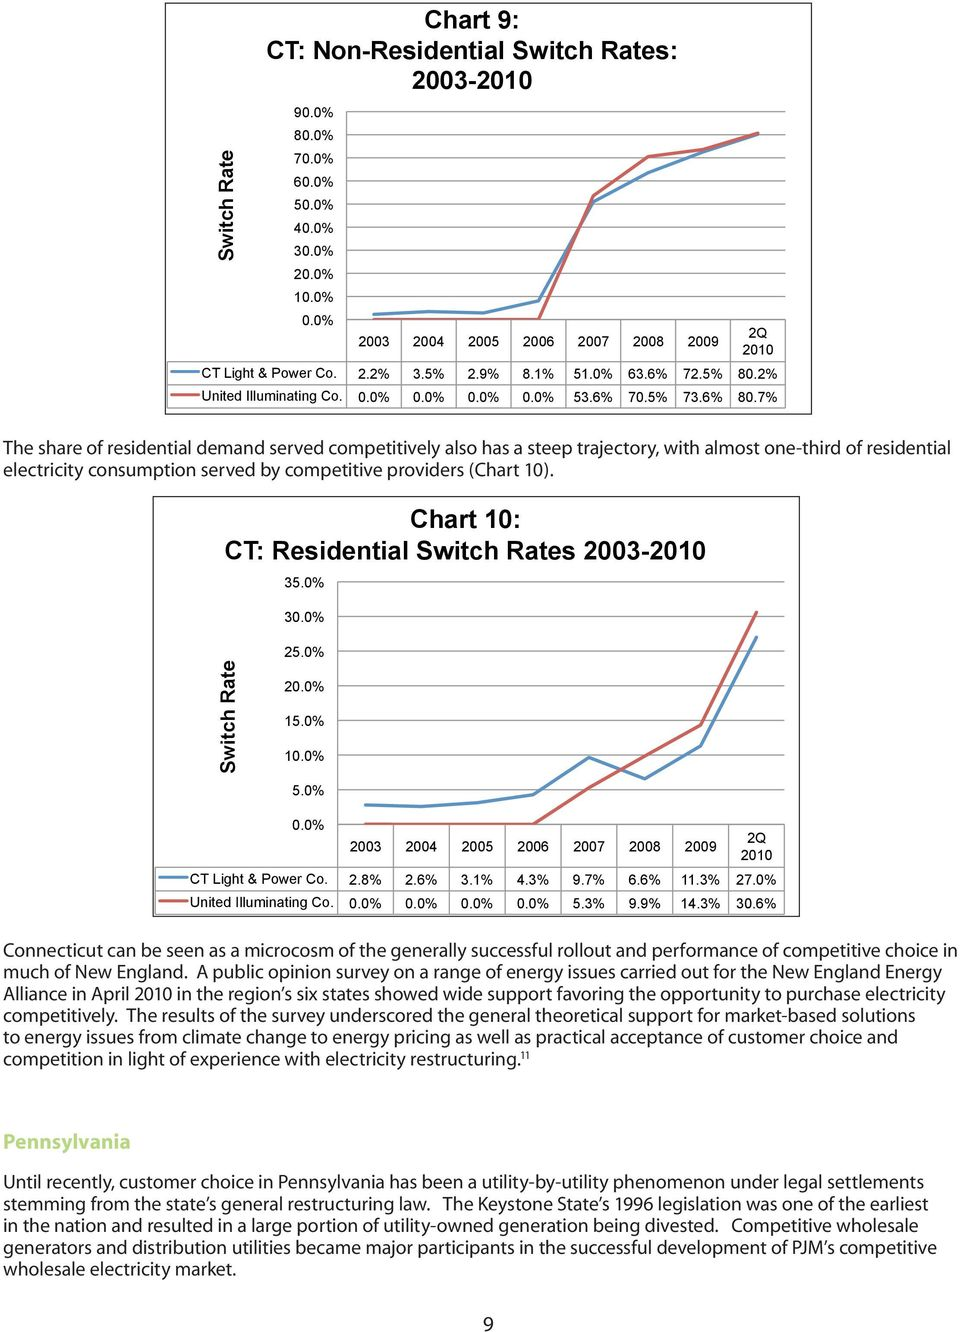 Chart 10: CT: Residential s 2003-35.0% 3 25.0% 2 15.0% 1 5.0% CT Light & Power Co. 2.8% 2.6% 3.1% 4.3% 9.7% 6.6% 11.3% 27.0% United Illuminating Co. 5.3% 9.9% 14.3% 30.